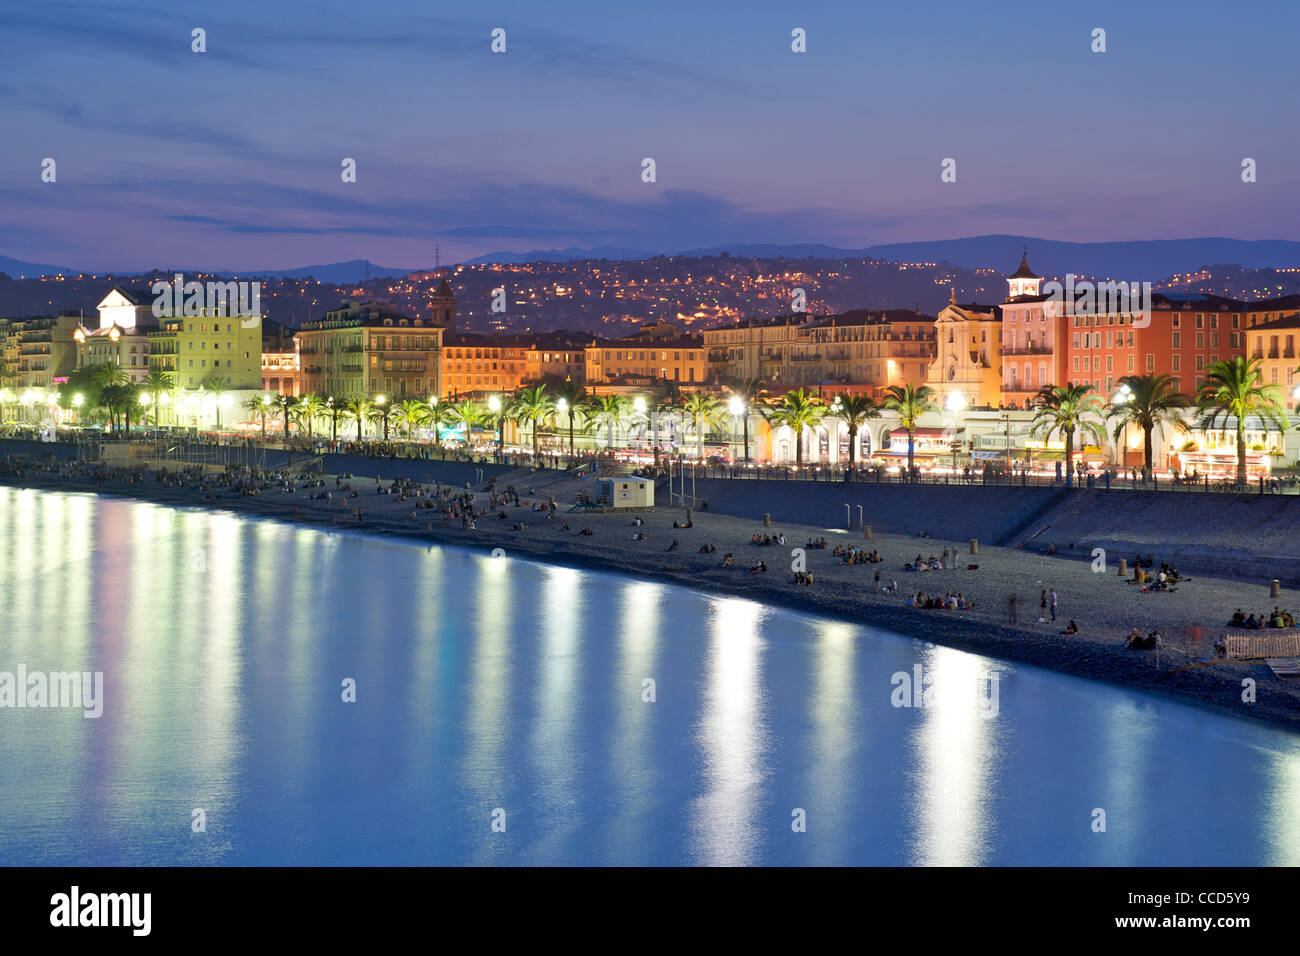 Night-time view of the Baie des Anges (Bay of Angels) the beach and the promenade in Nice on France's Mediterranean - Stock Image